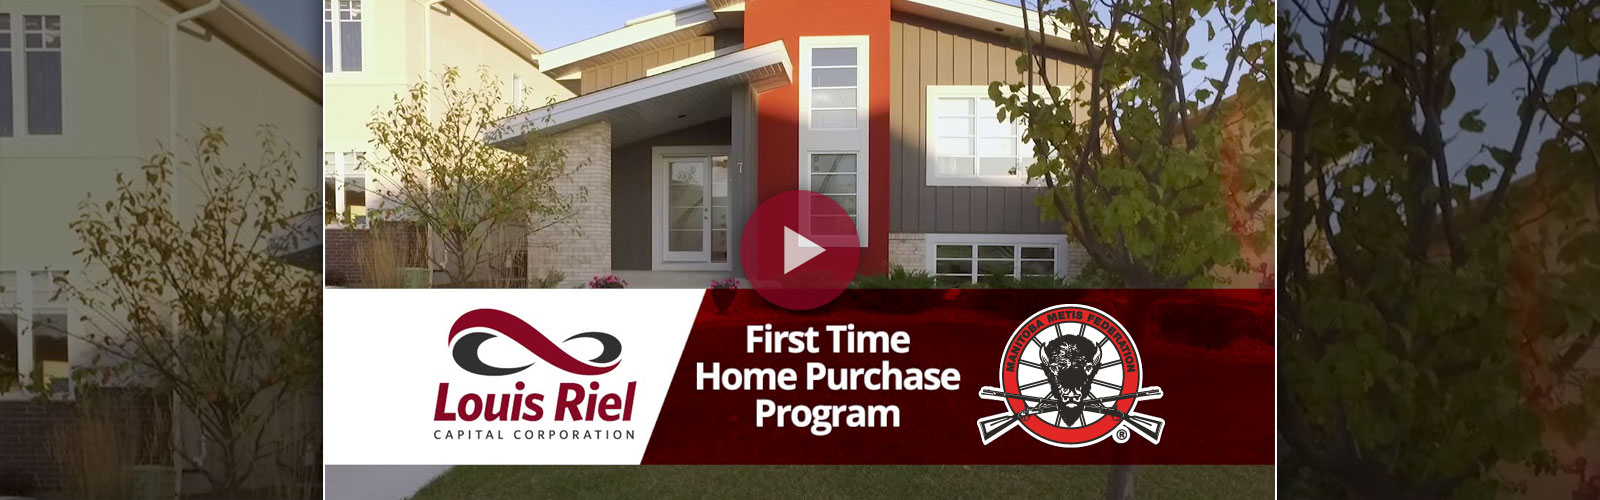 First Time Home Purchase Program Video